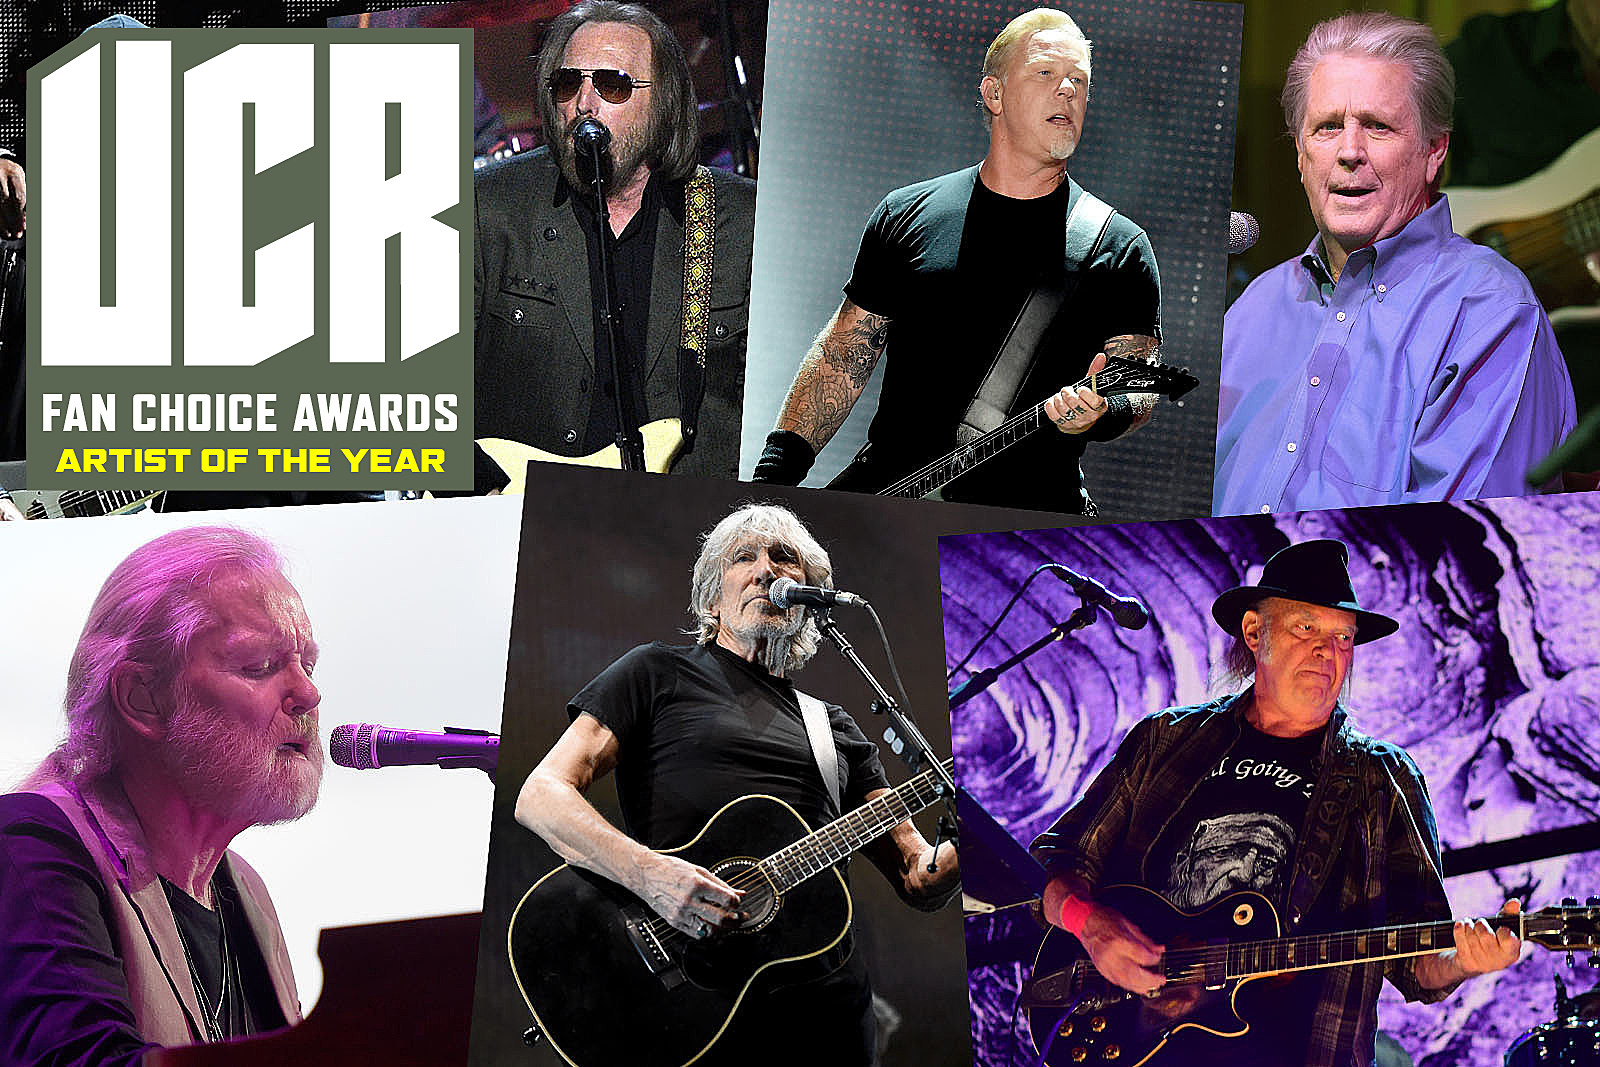 Who Is 2017's Artist of the Year? UCR Fan Choice Awards